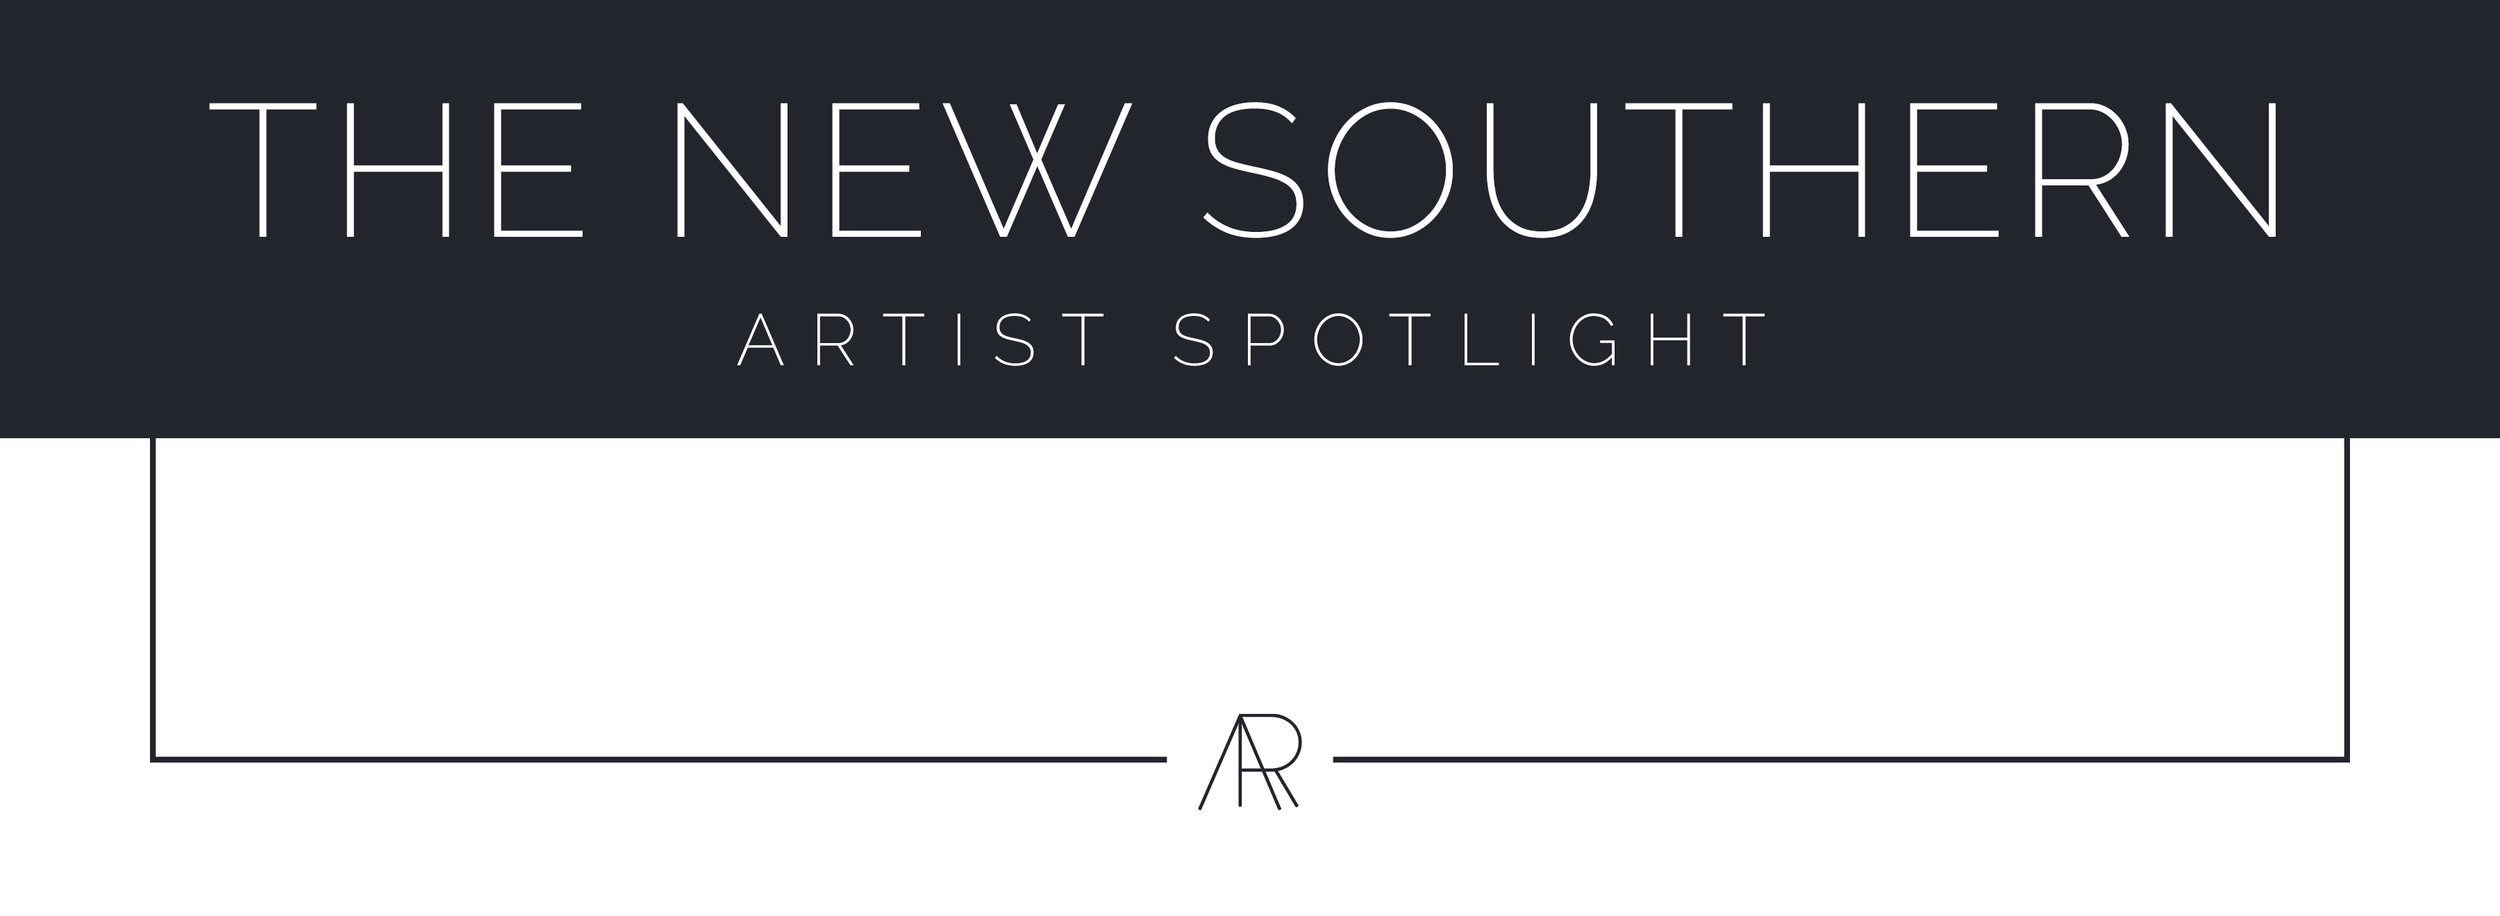 Alyssa Rosenheck's The New Southern Artist Spotlight with Catherine Erb, Fine-Art Photographer of Memphis, TN